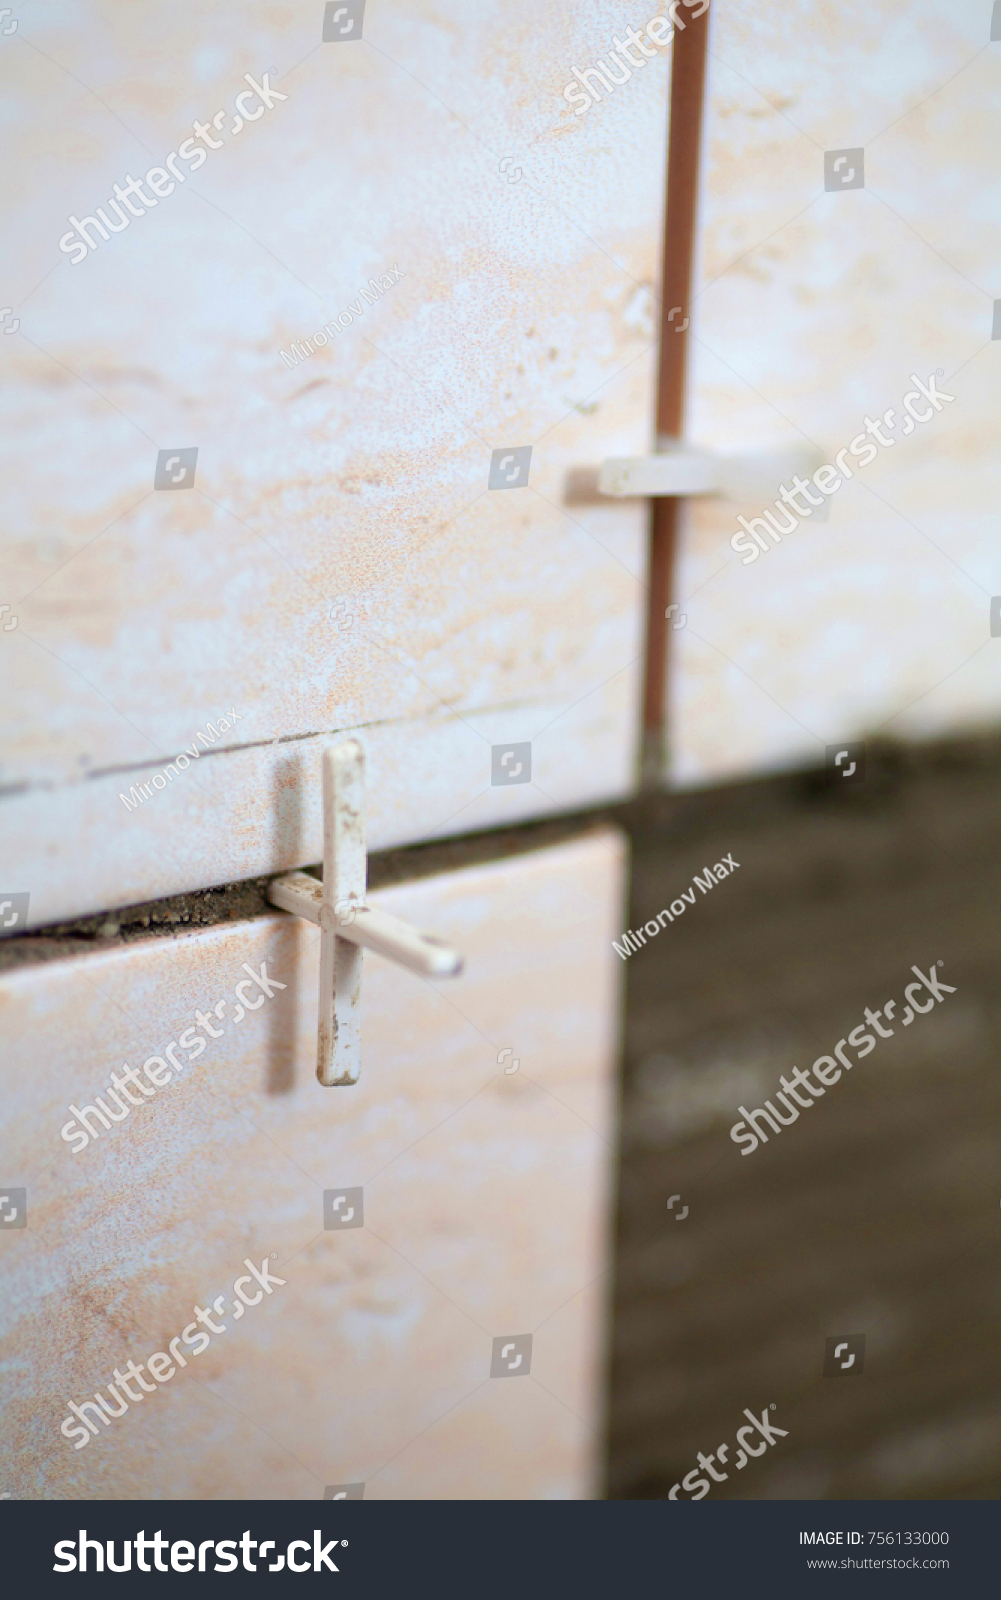 Laying Tiles Industrial Construction Worker Installing Stock Photo ...